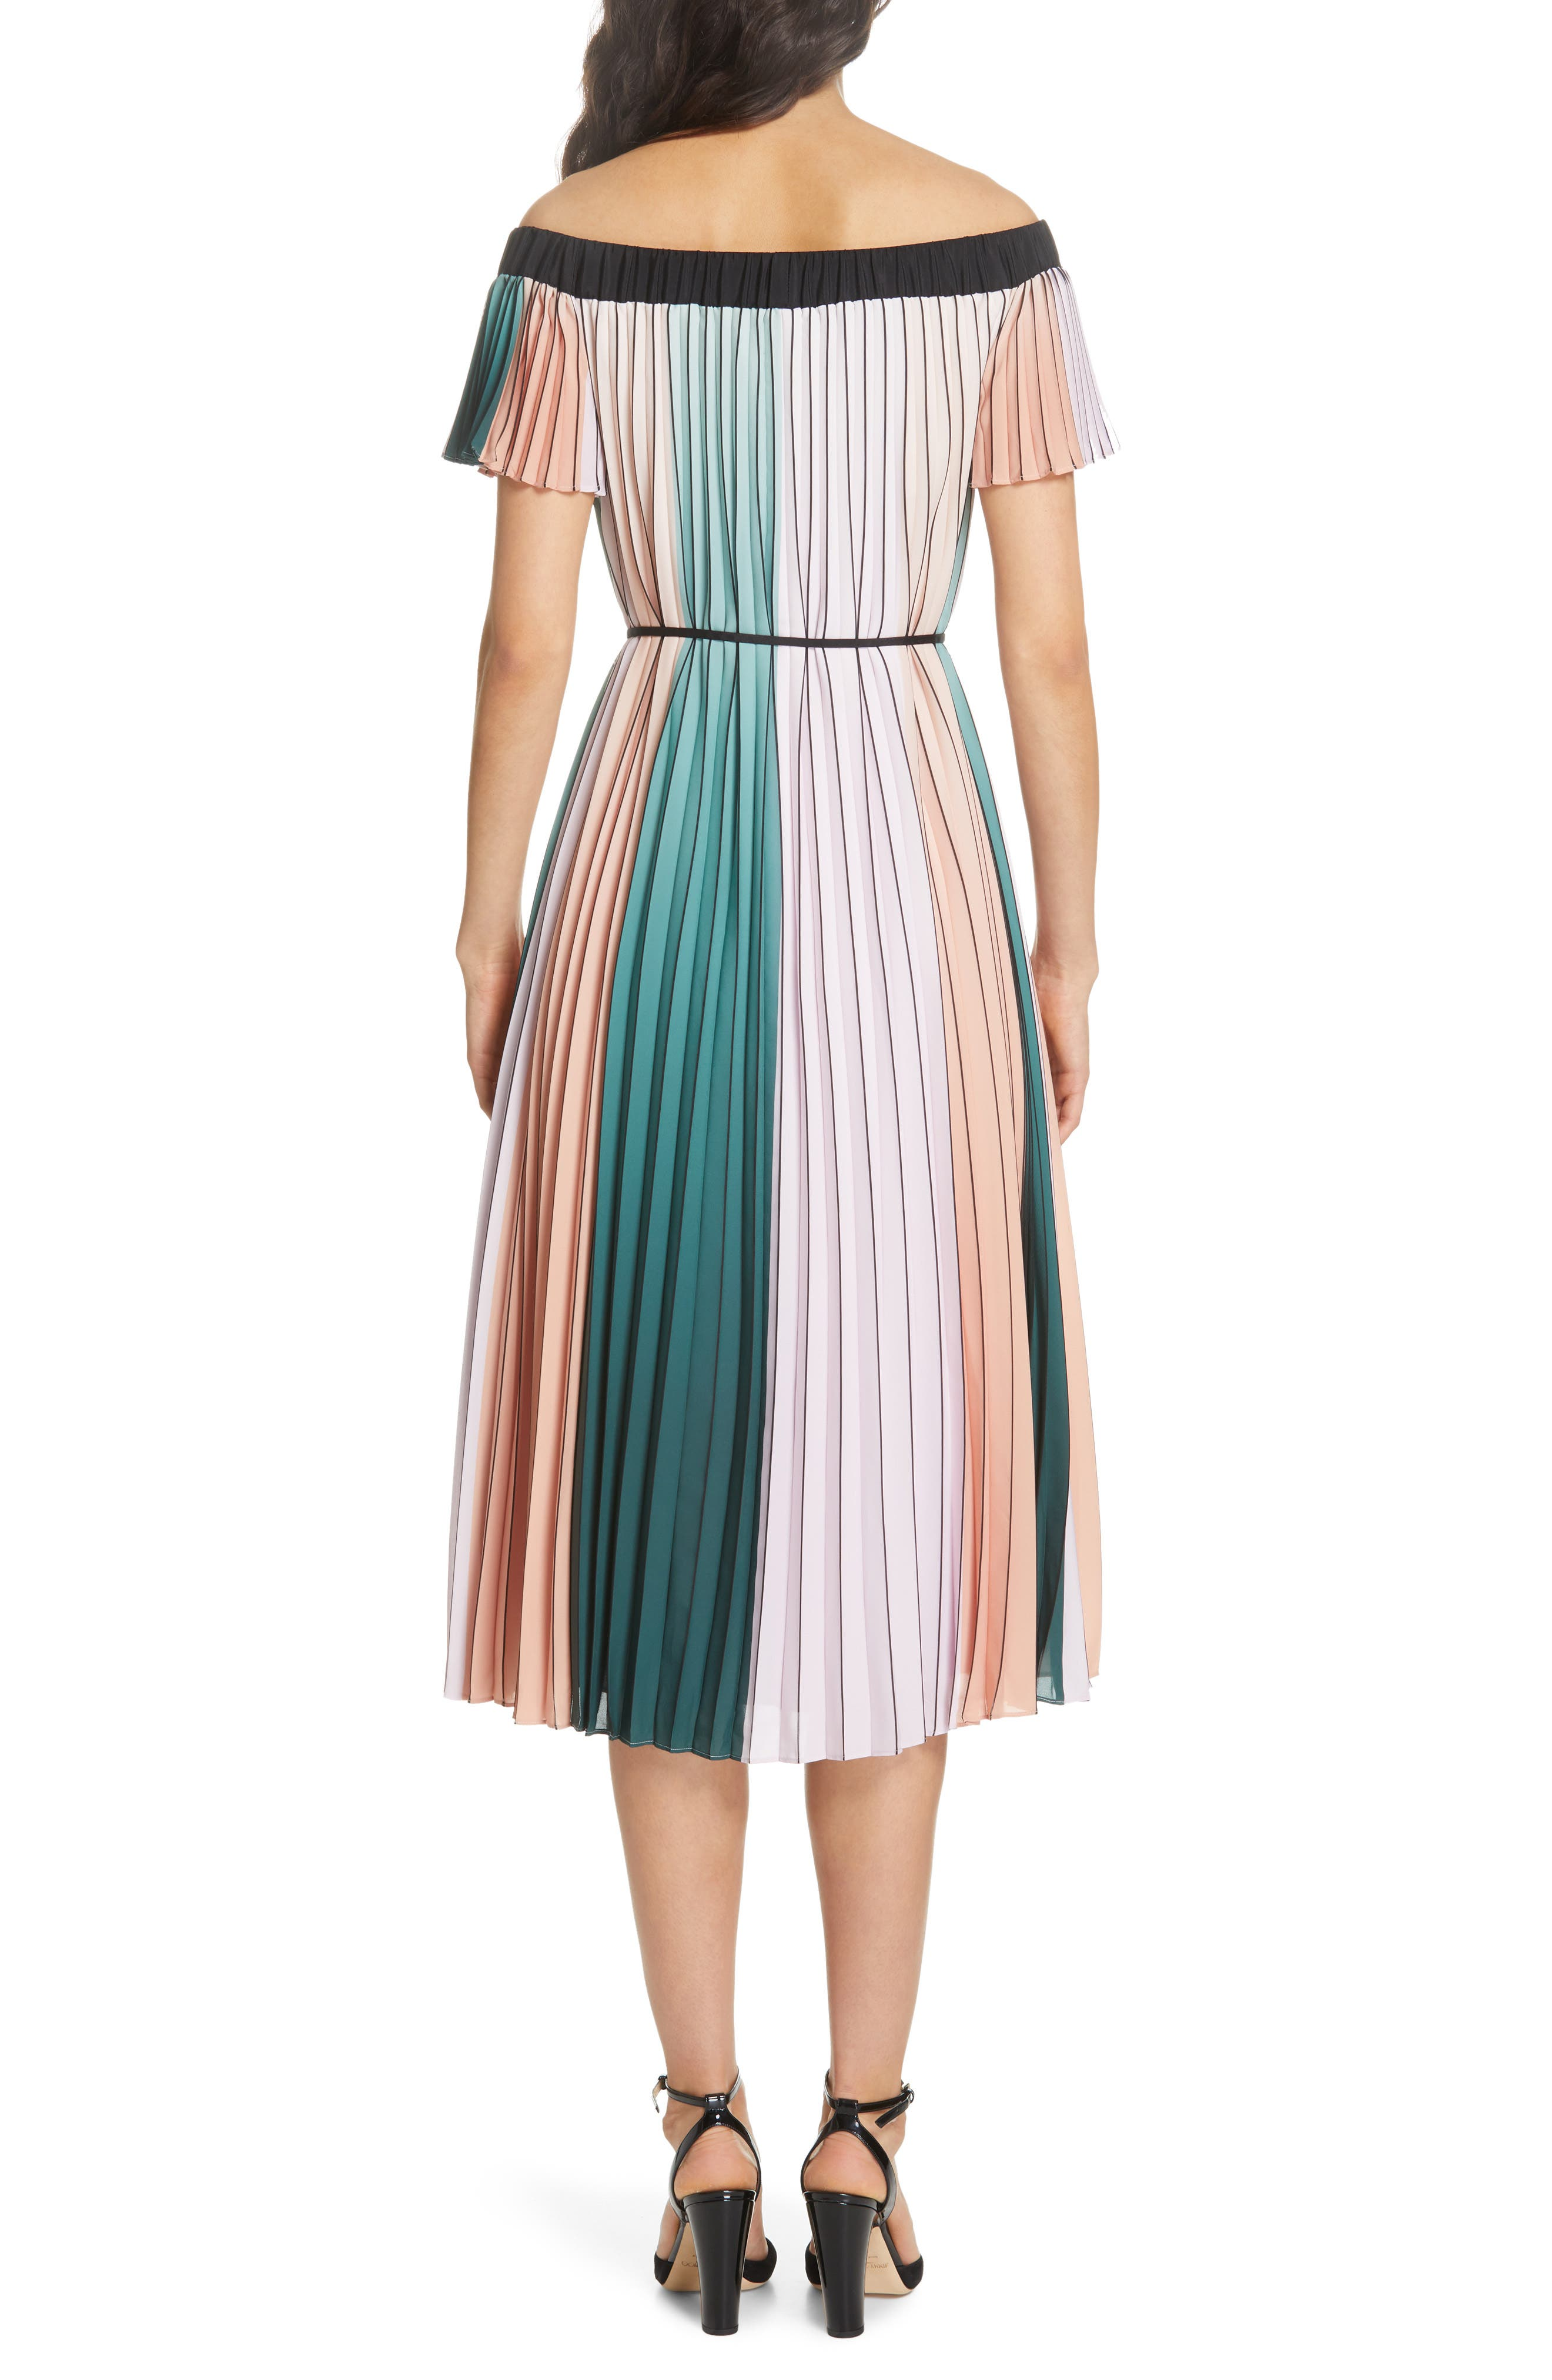 TED BAKER LONDON, Fernee Colorblock Pleated Dress, Alternate thumbnail 2, color, LILAC